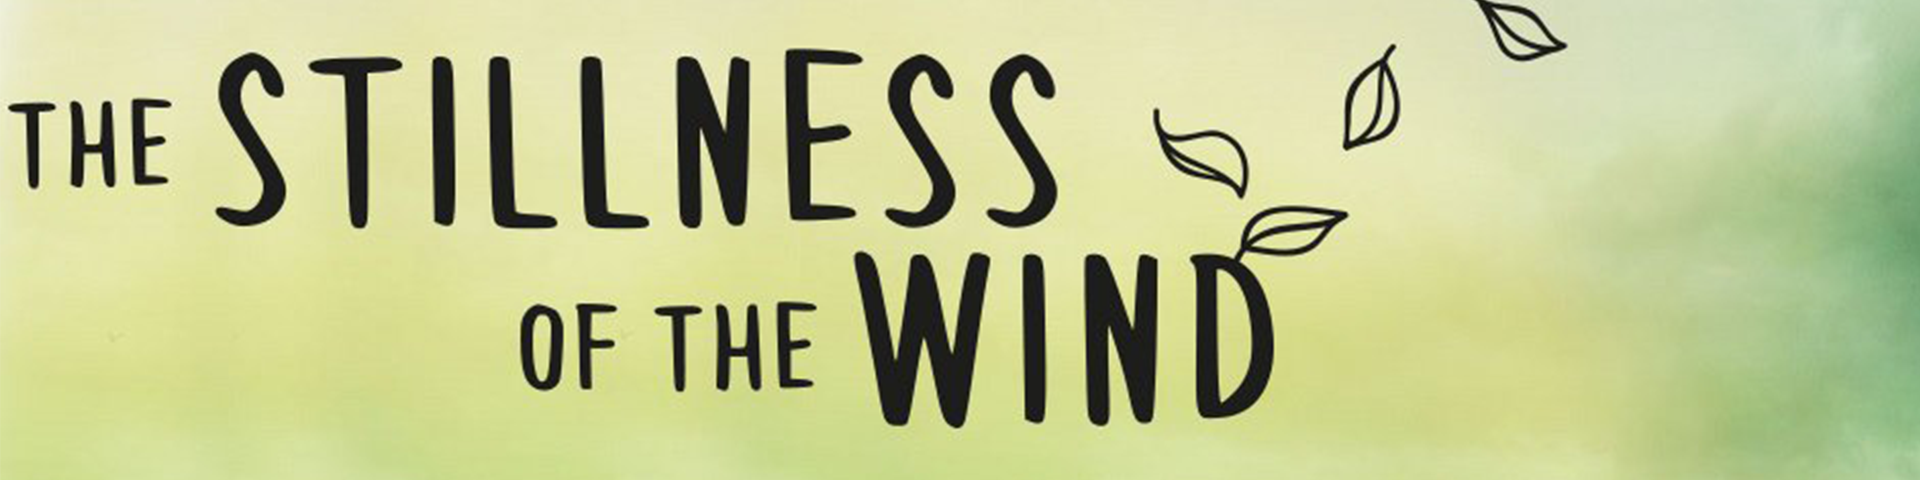 The Stillness of the Wind Review Header.png